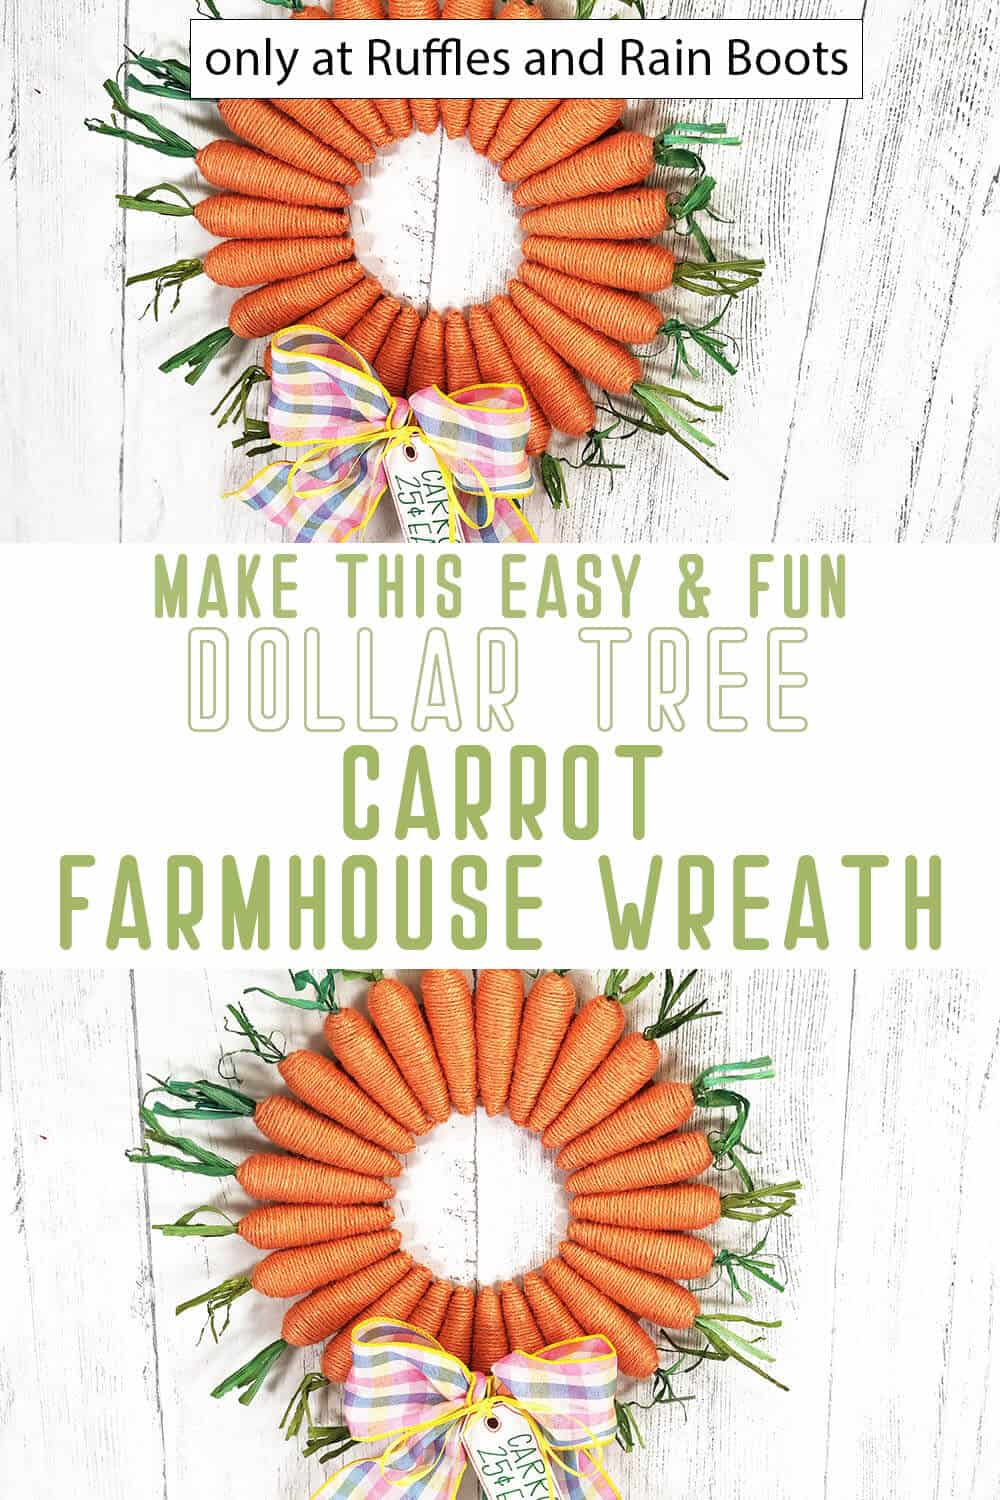 photo collage of farmhouse carrot wreath dollar tree craft with text which reads make this easy & fun dollar tree carrot farmhouse wreath